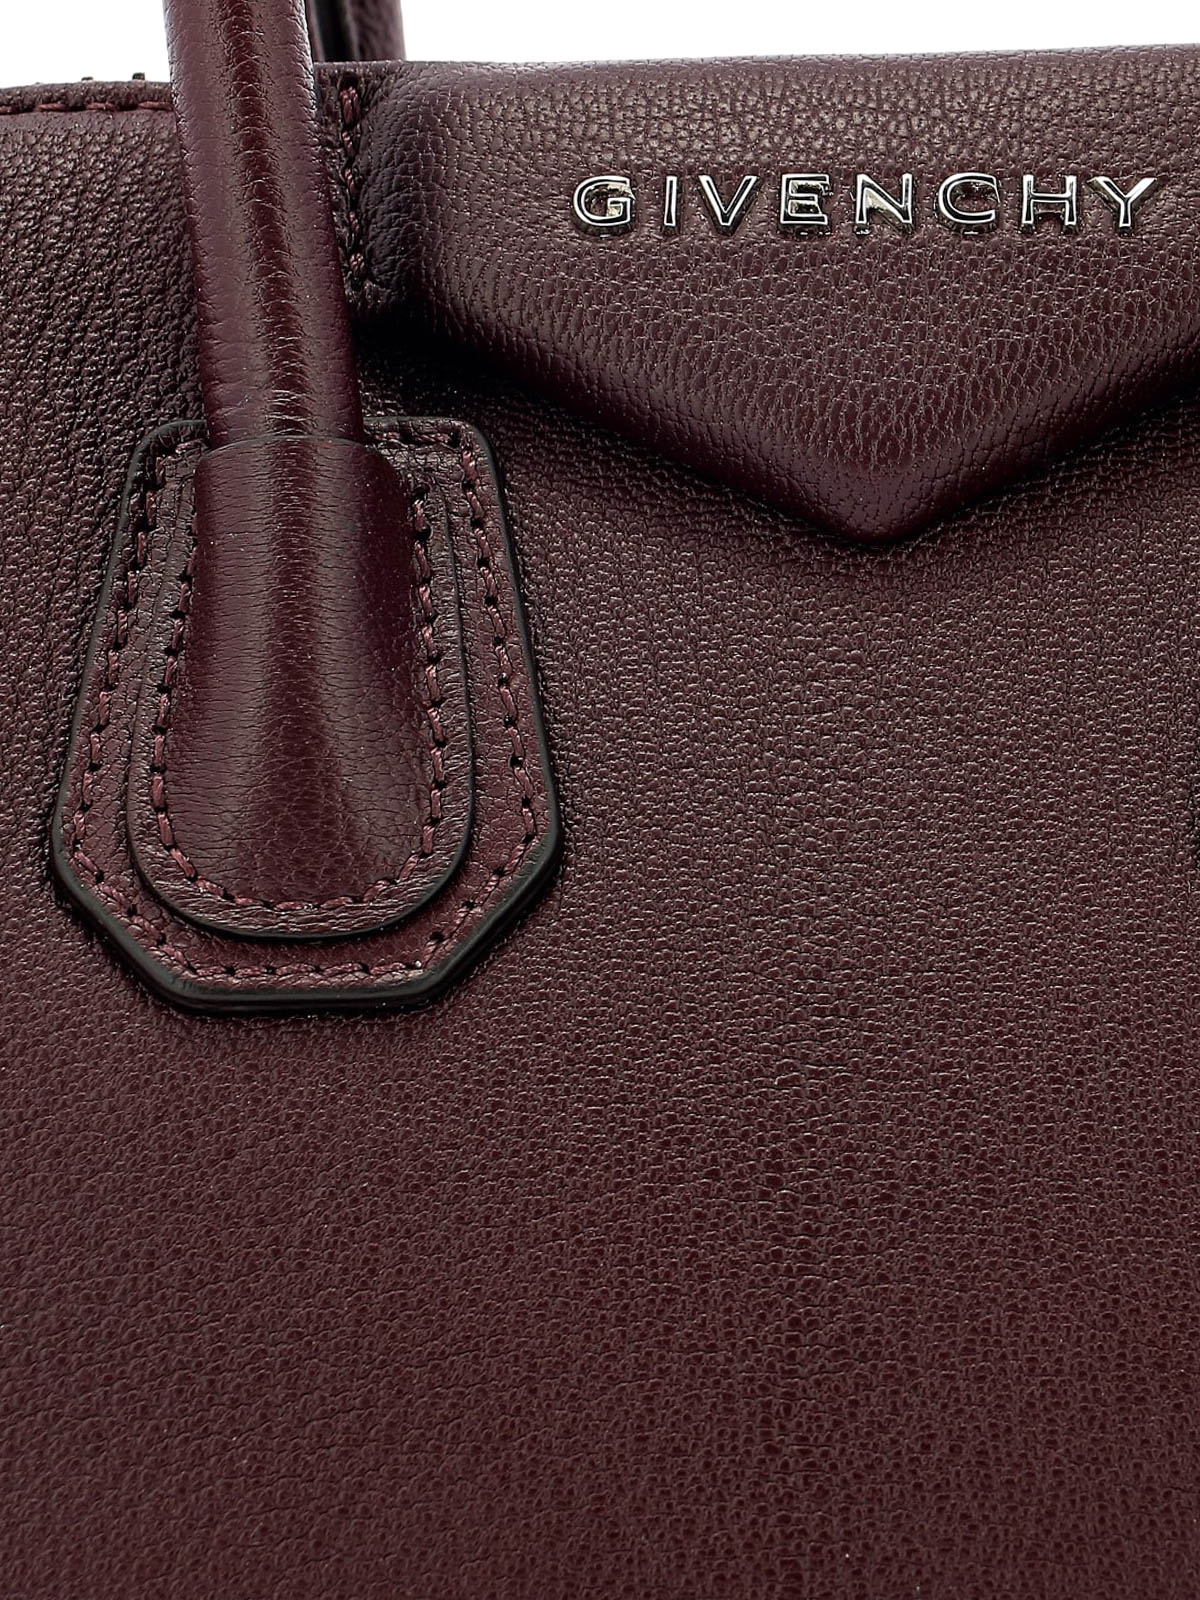 Givenchy - Antigona aubergine leather mini handbag - bowling bags ... dbcf9200bf969